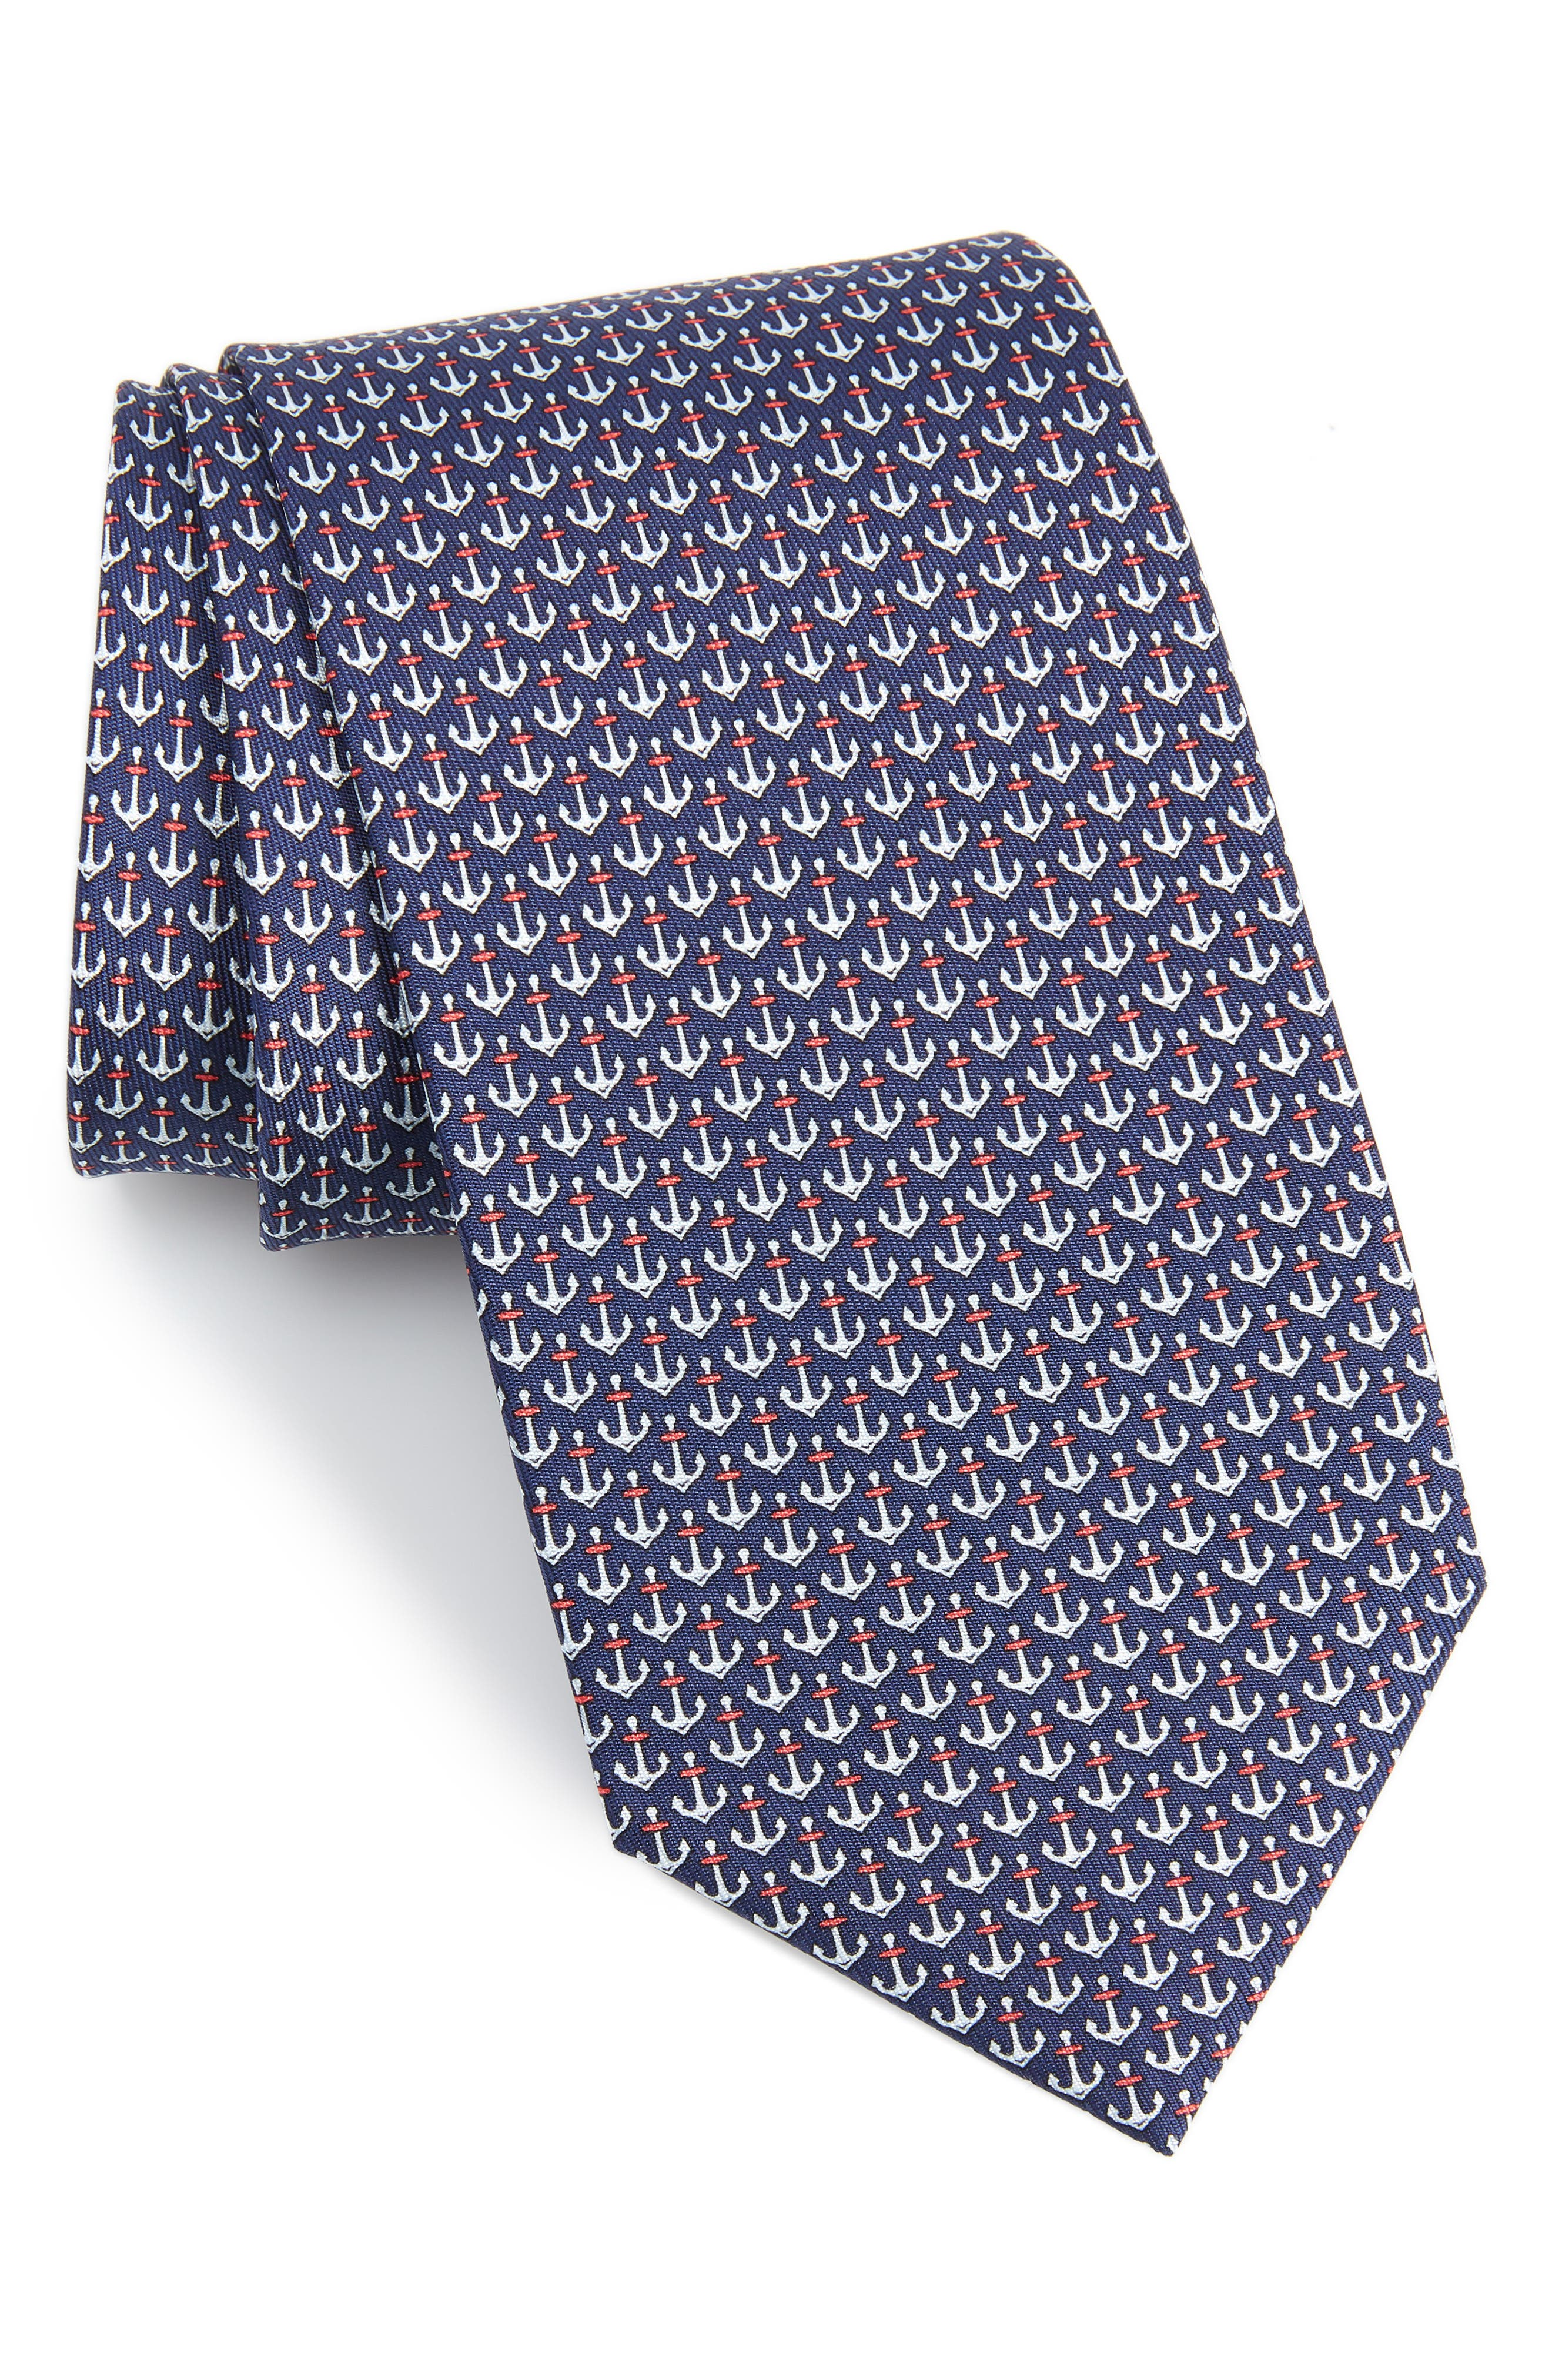 Encora Silk Tie,                             Main thumbnail 1, color,                             NAVY